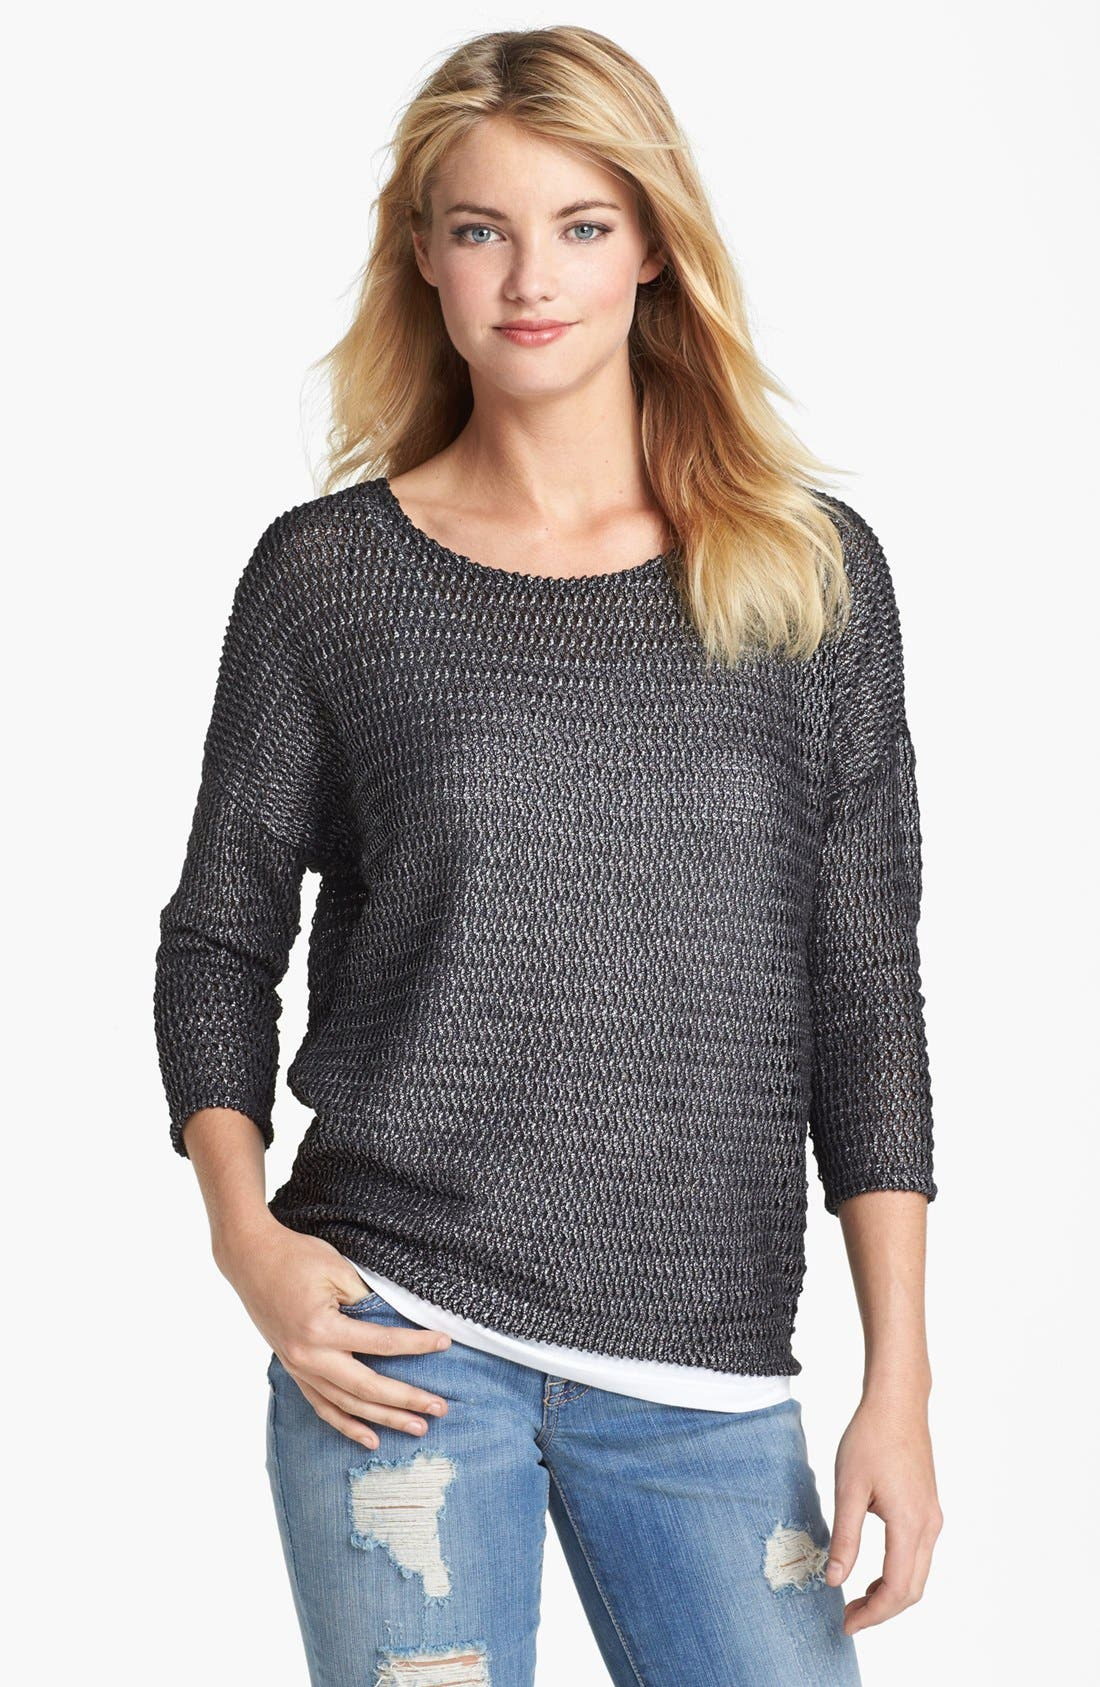 Main Image - Two by Vince Camuto Metallic Open Knit Sweater